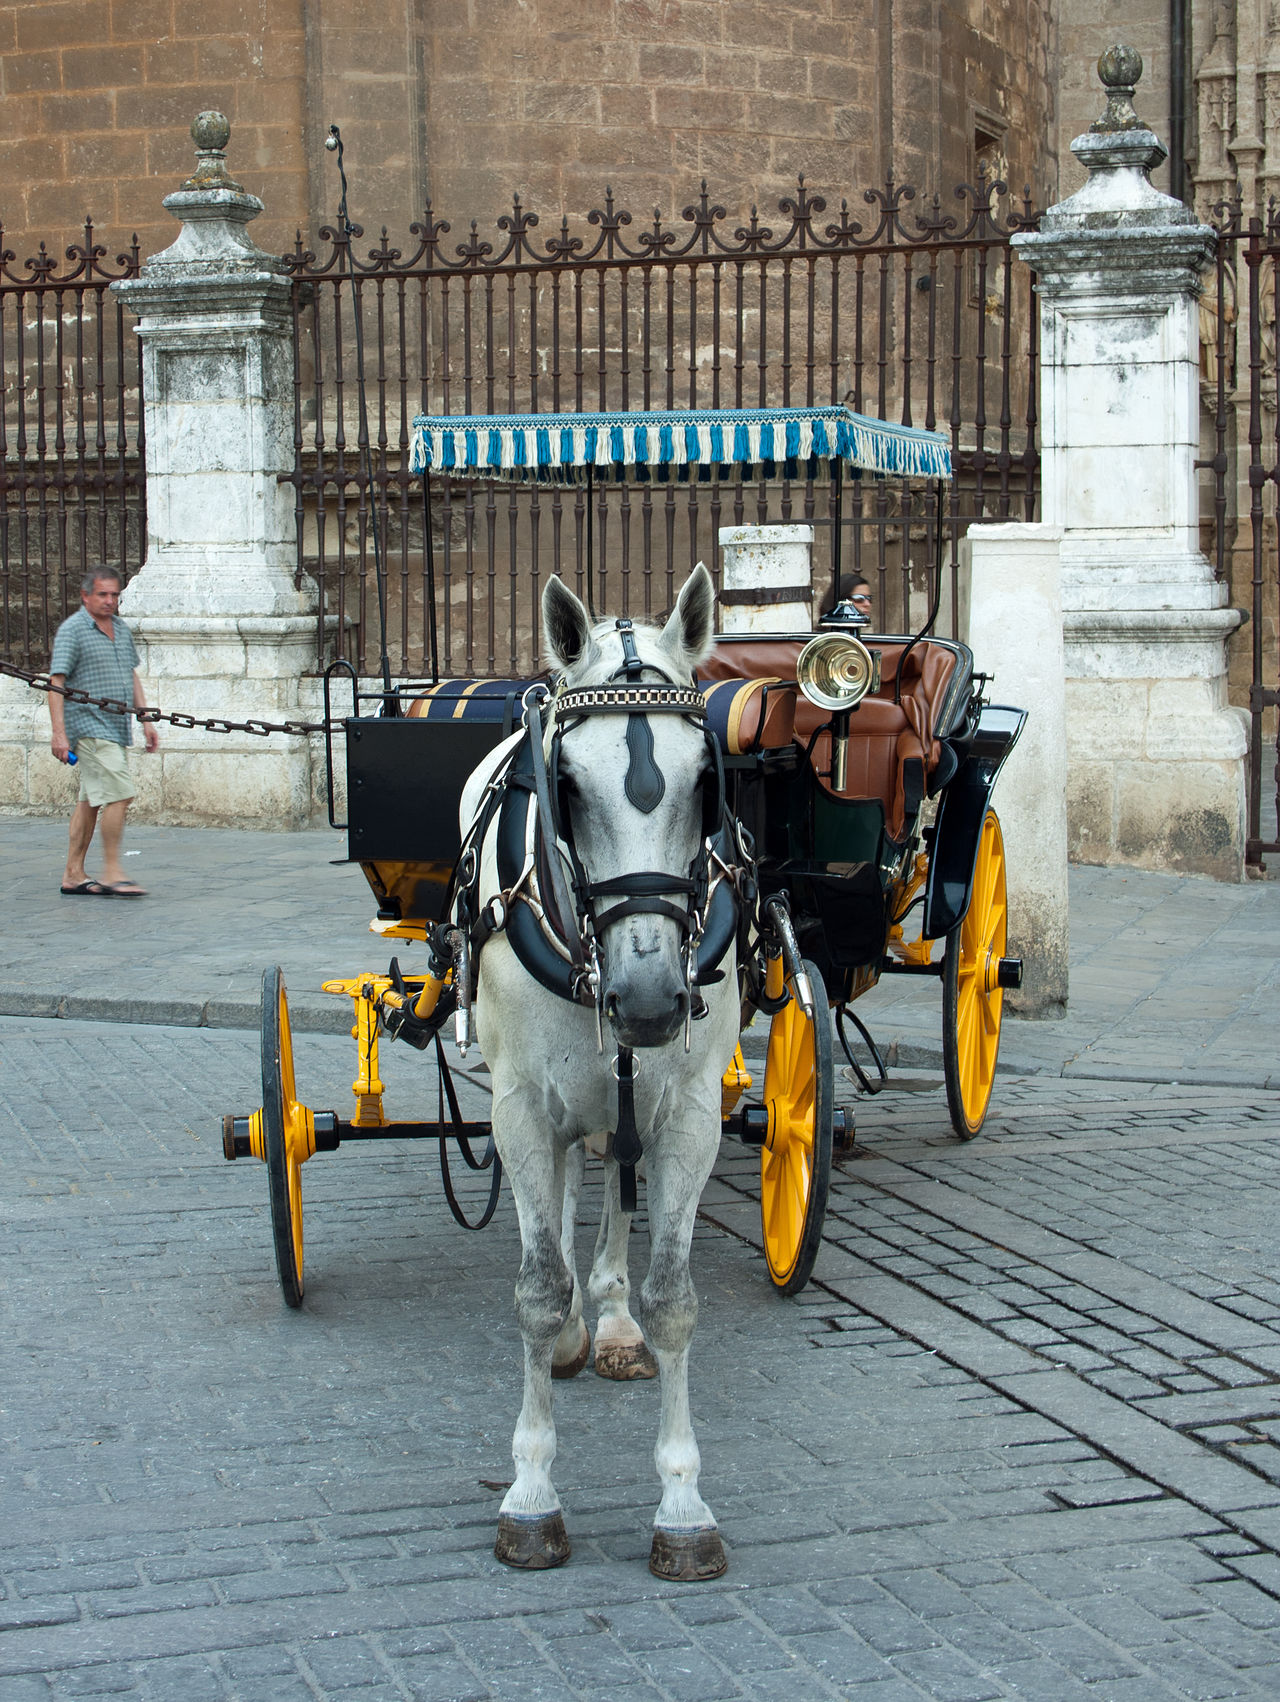 Horse and carriage ride in Sevilla, Spain Animal Themes Animals At Work Cart Culture Day Grey Horse Grey Horse And Carriage Grey Working Horse Horse Horse And Carriage Horse And Cart Lifestyles One Animal Sevilla Sevilla Carriage Togetherness Transportation Working Animal Working Horse Working Horses